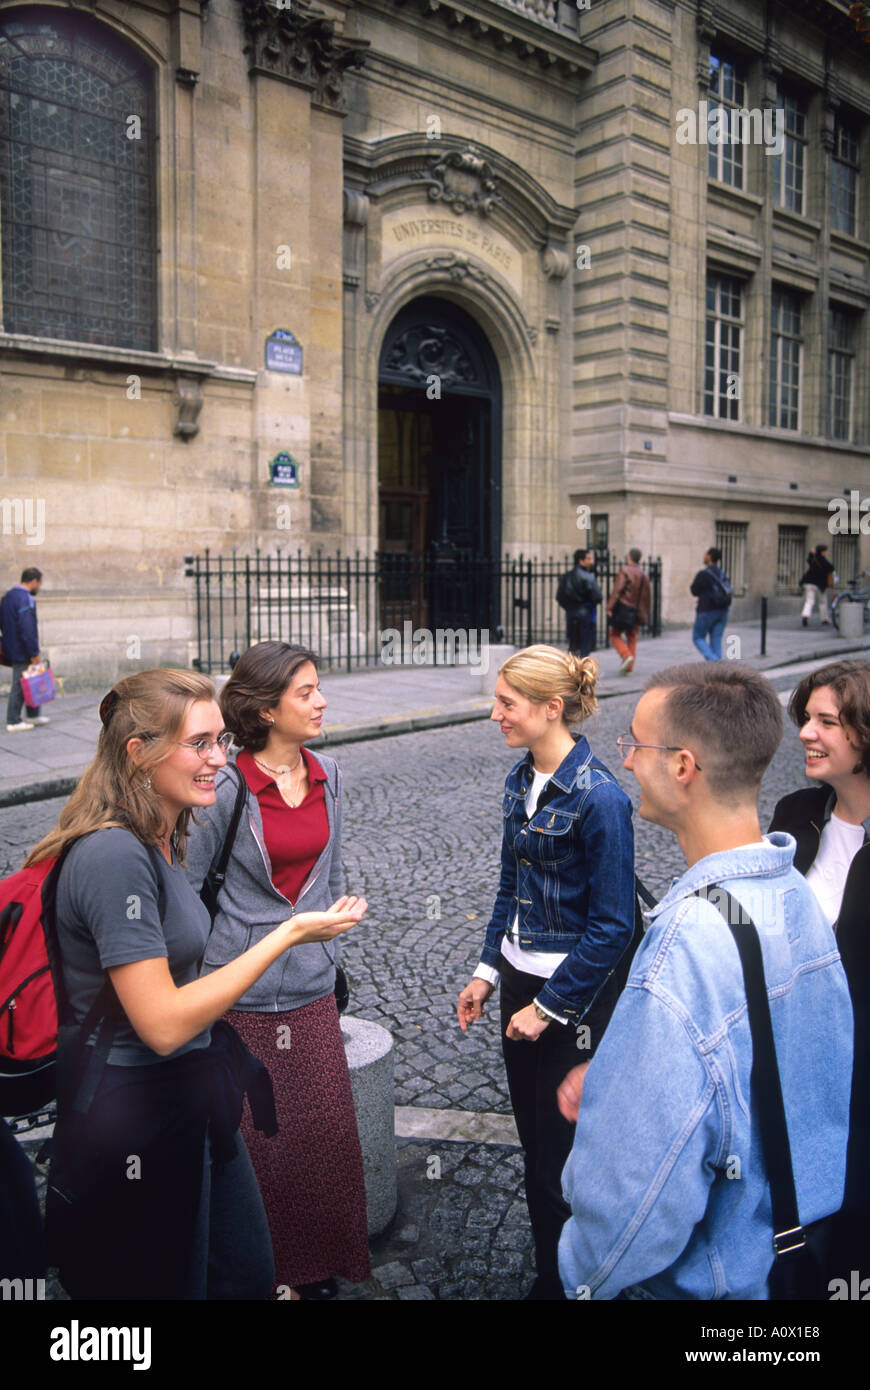 French college students outside the Sorbonne in Paris France  - Stock Image